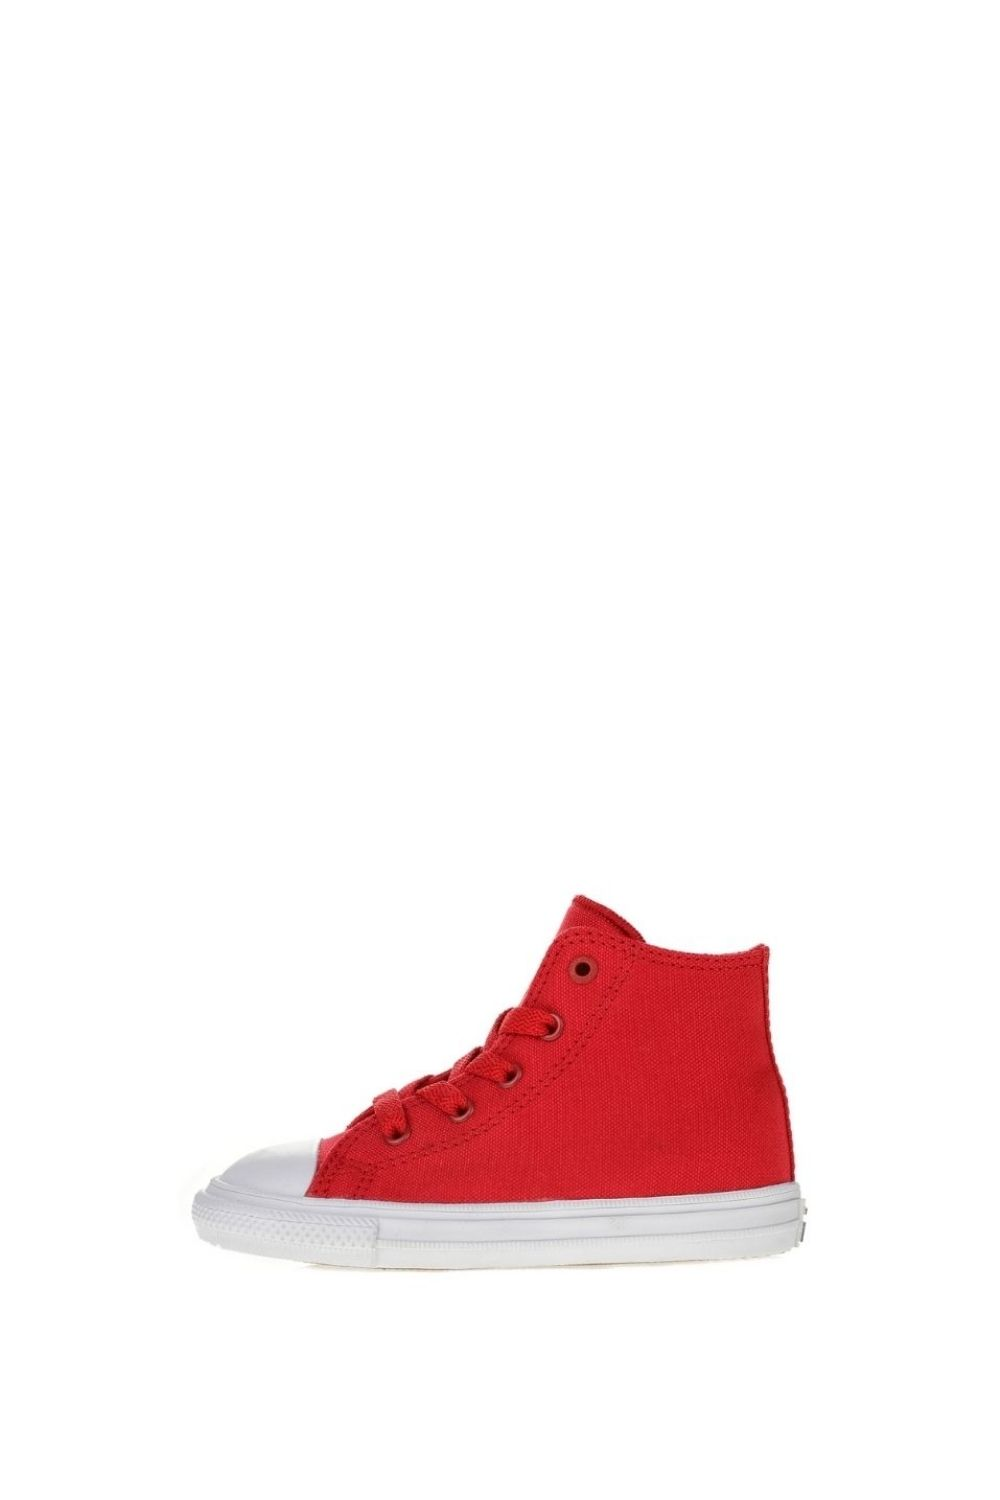 CONVERSE – Βρεφικά ψηλά sneakers CONVERSE Chuck Taylor All Star II Hi κόκκινα